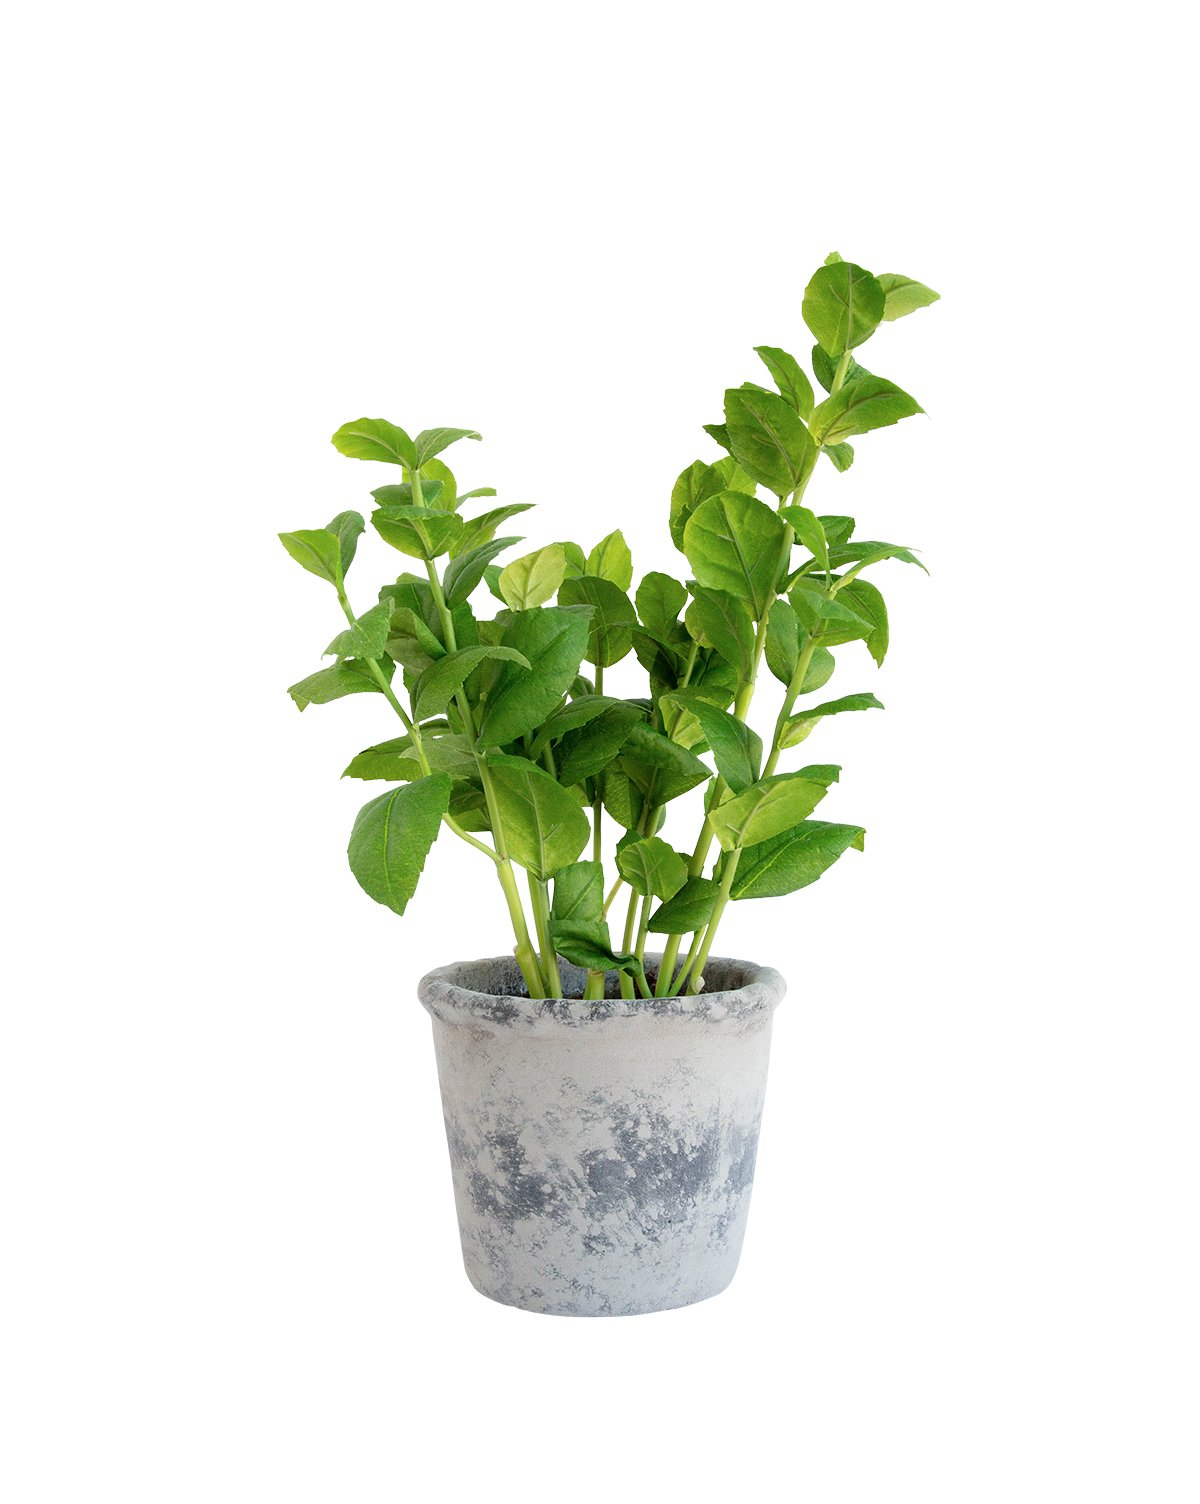 Faux_Basil_Potted_Herb_1.jpg